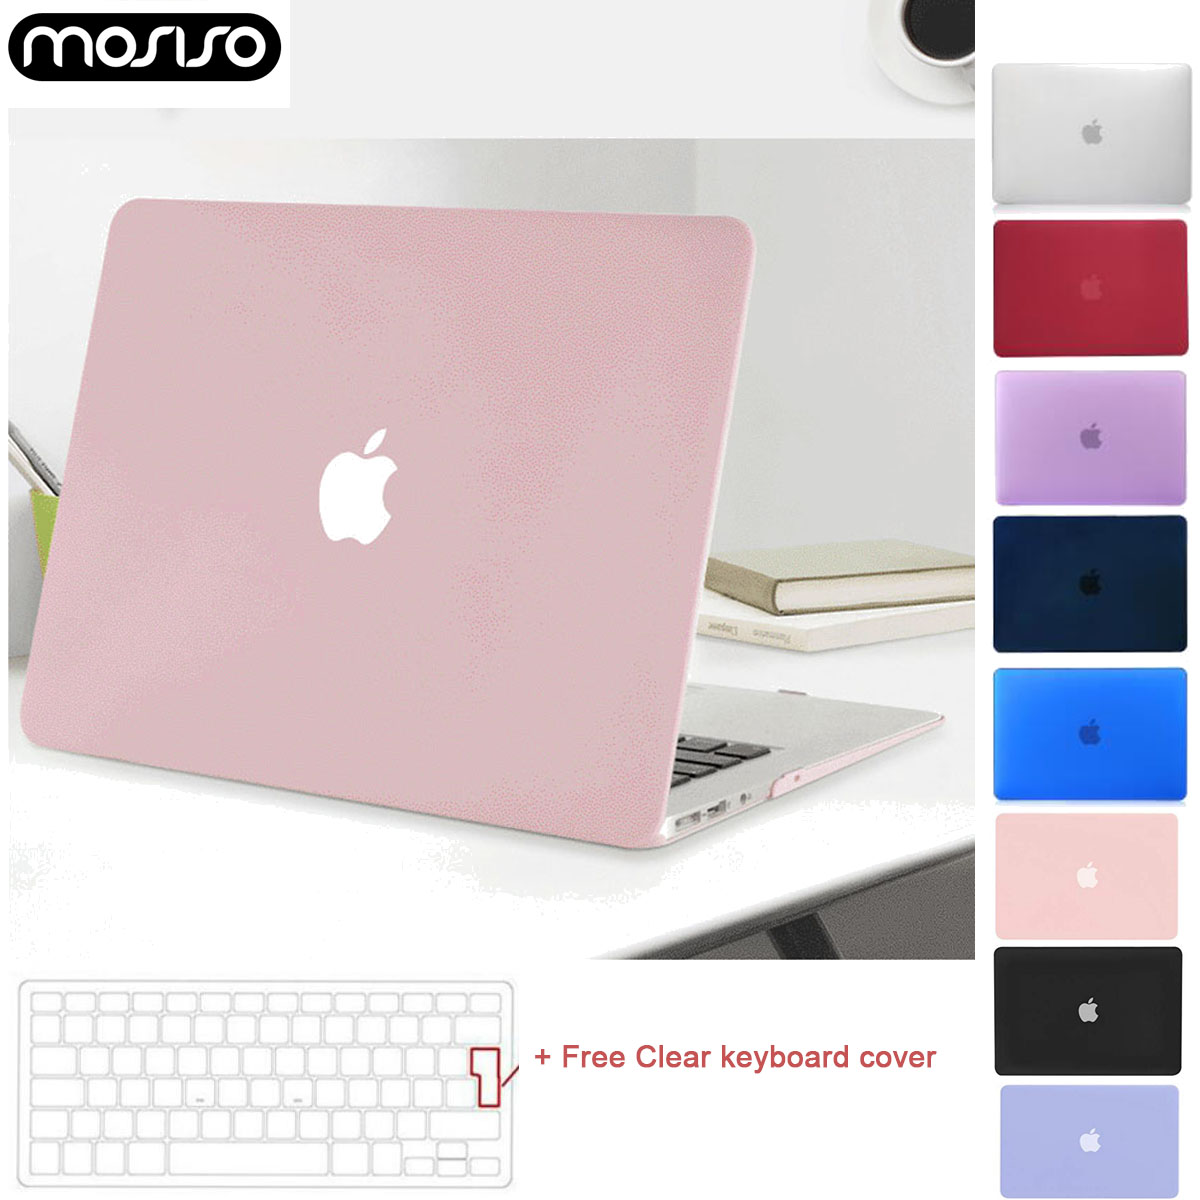 MOSISO A1989 A2159 A1708 A1706 Pro 13 Case 2018 2019 Laptop Shell Cover For New Macbook Air13 Inch A1932 Touch ID Protector Case